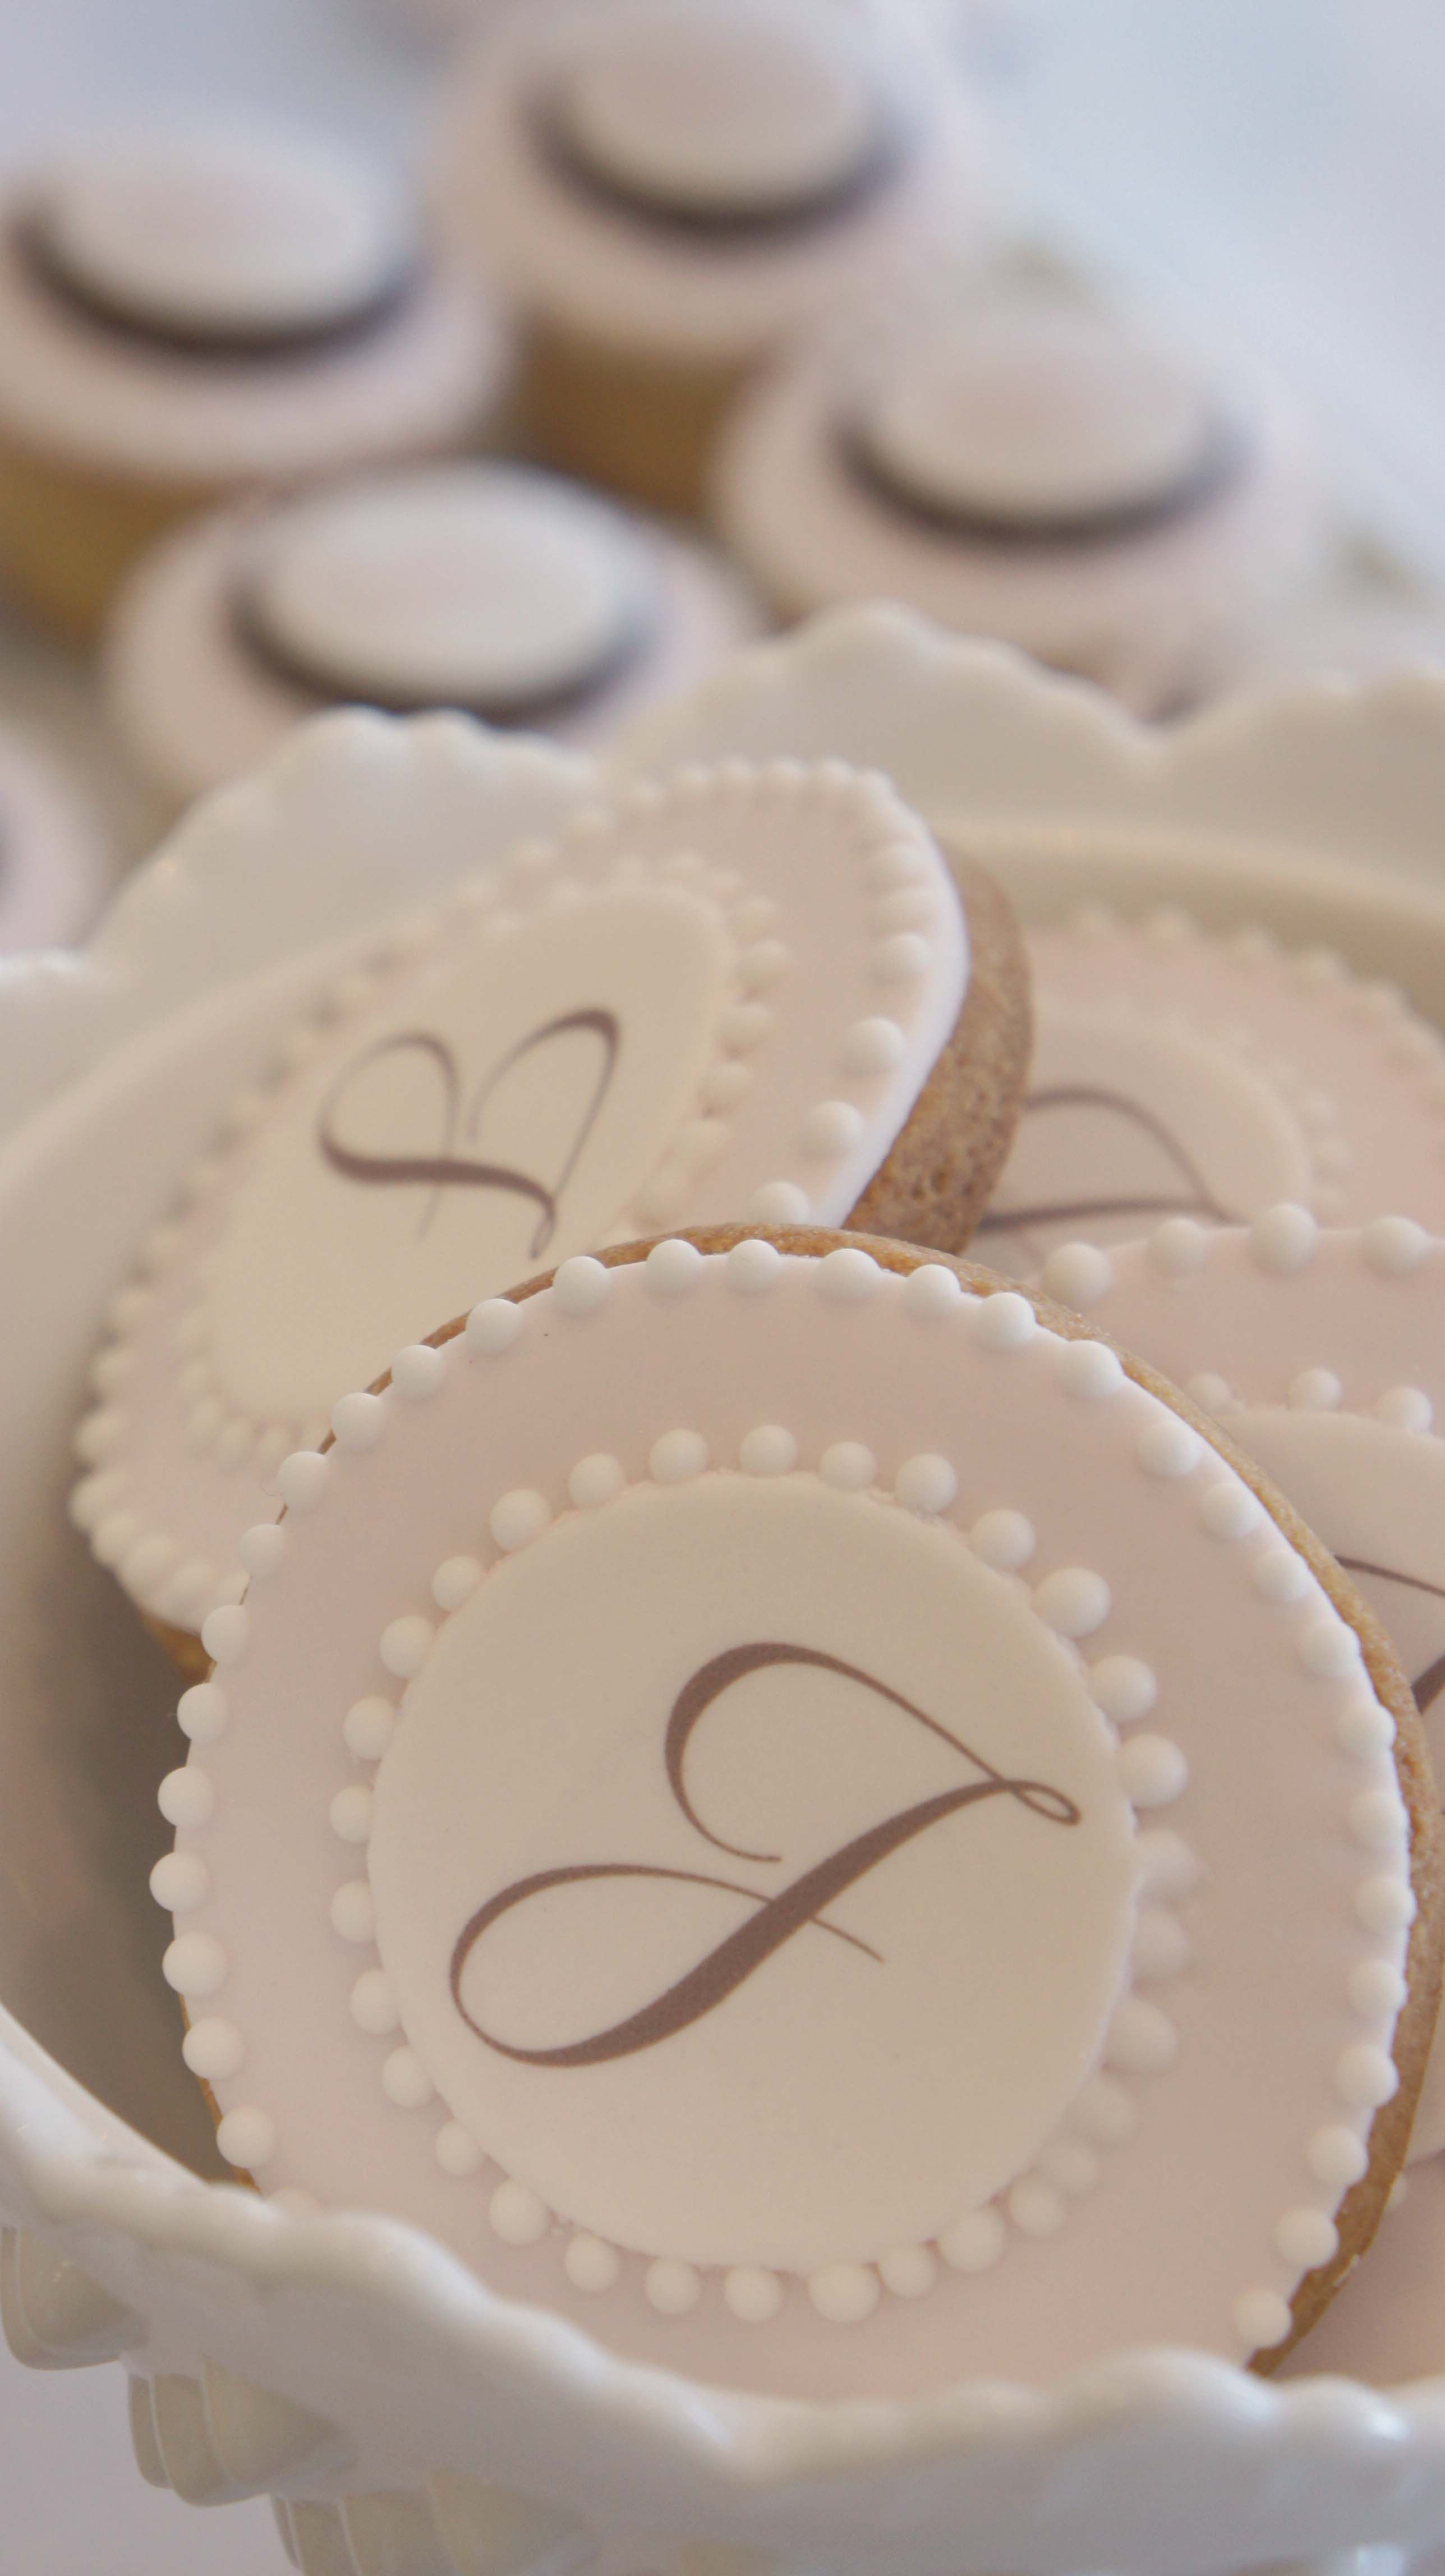 monogram cookies by sweet bloom cakes | ONE LOVELY DAY EVENTS ...